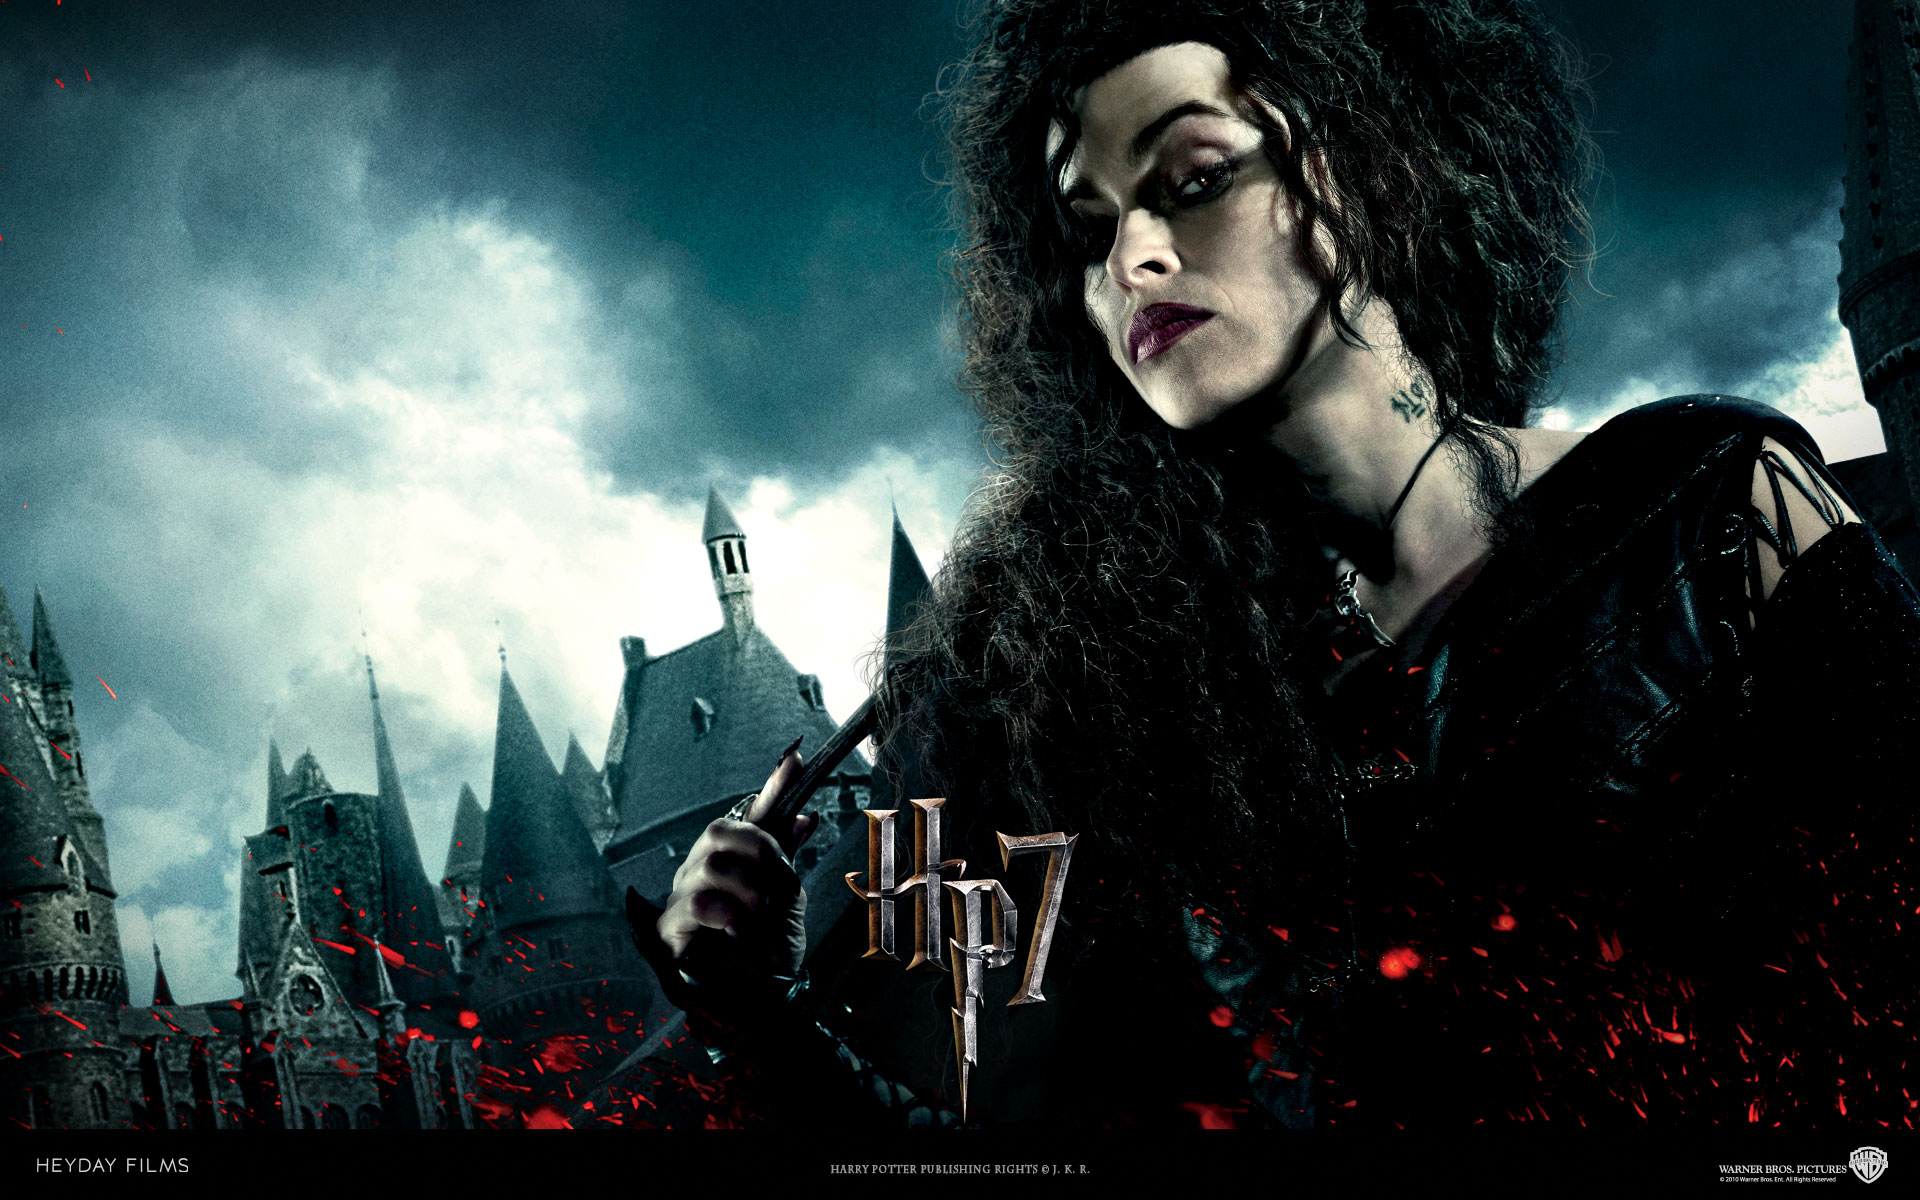 Bellatrix Lestrange From Harry Potter And The Deathly Hallows Wallpaper